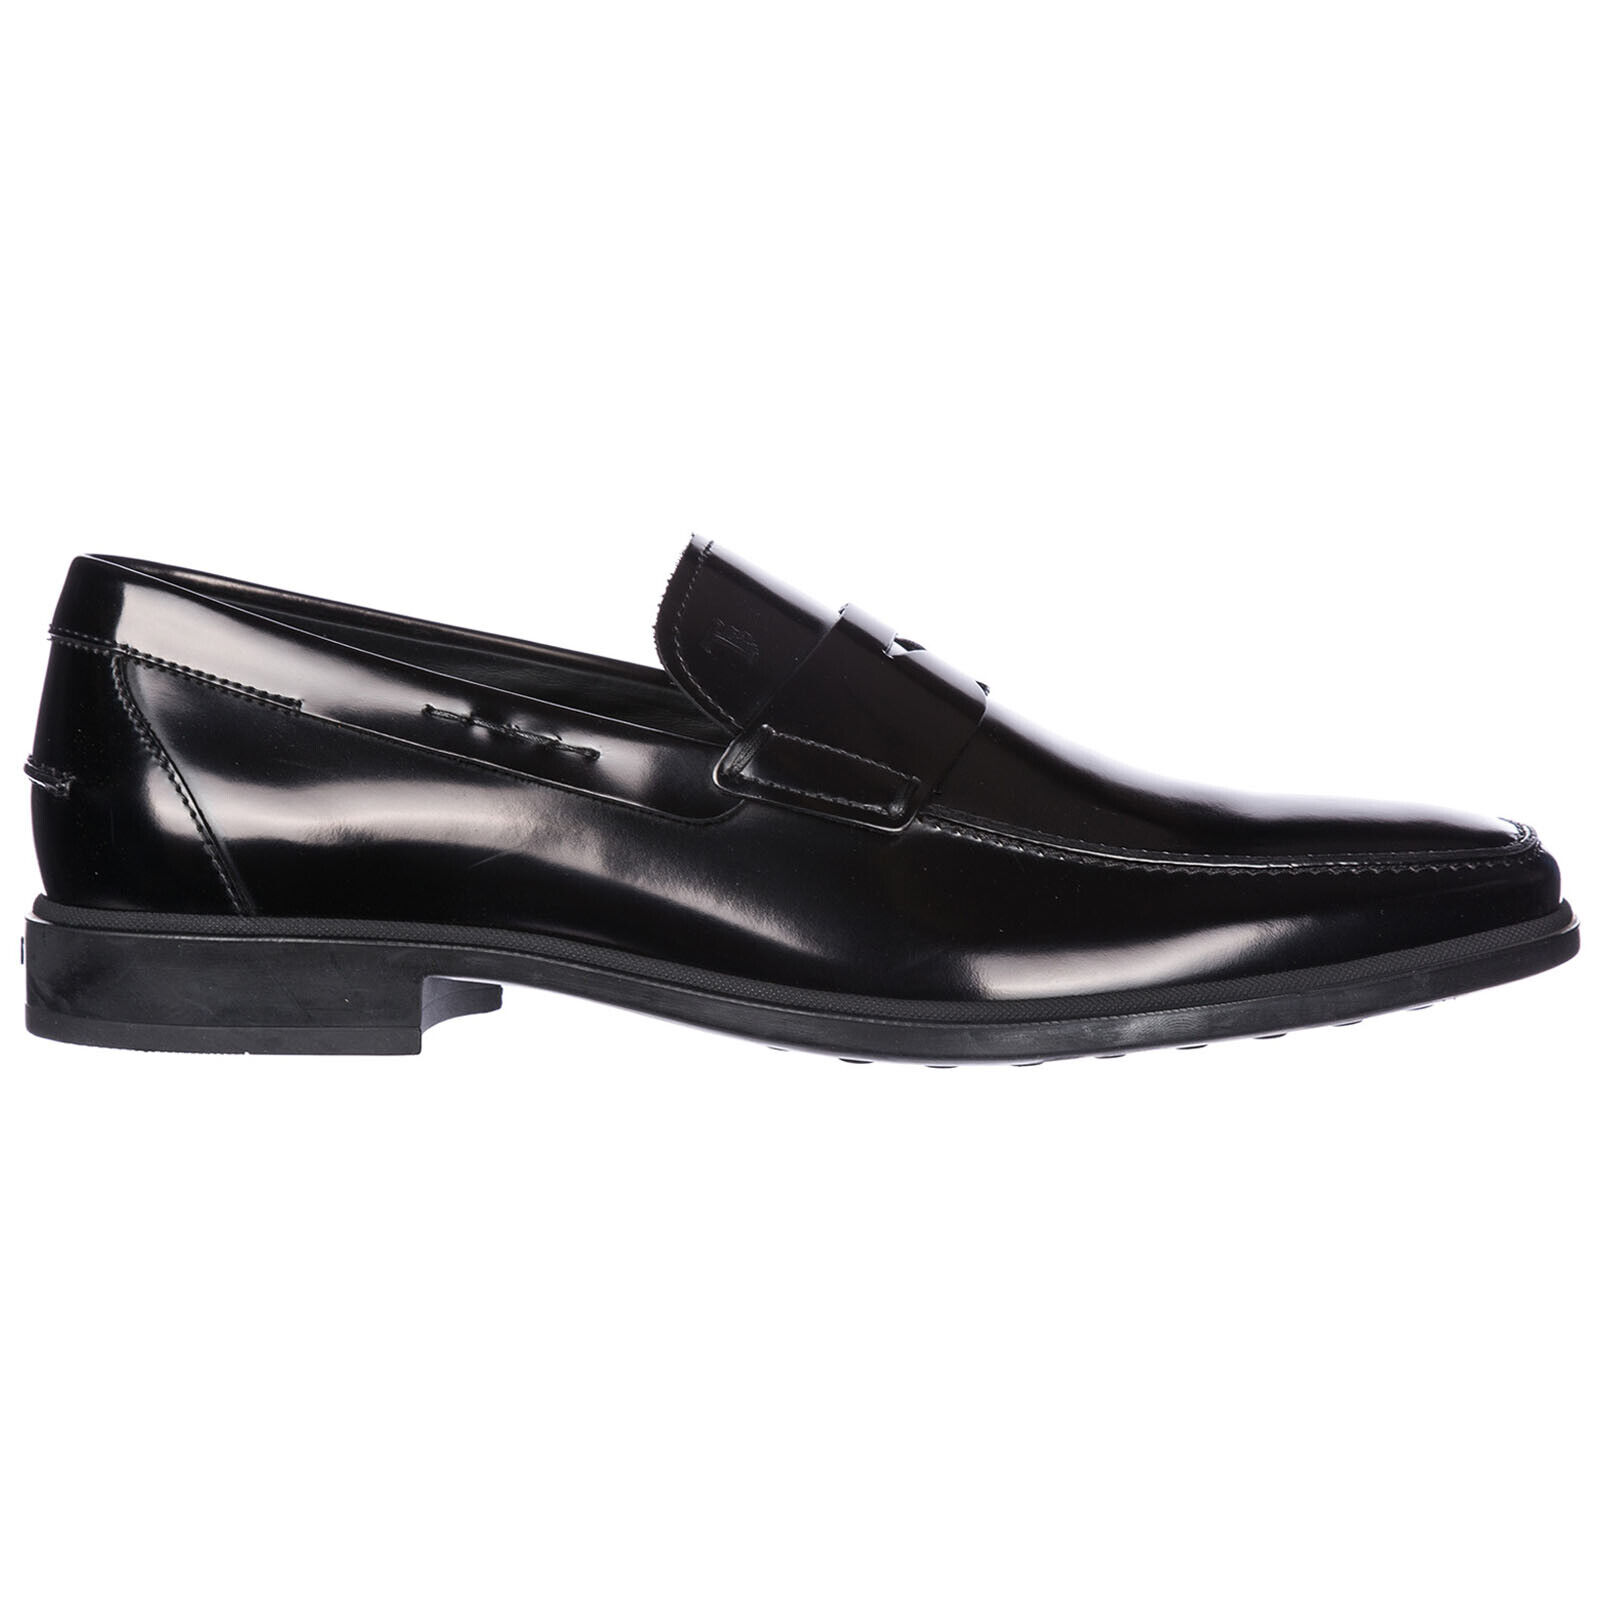 TOD'S herren LEATHER LOAFERS MOCCASINS NEW schwarz 99B